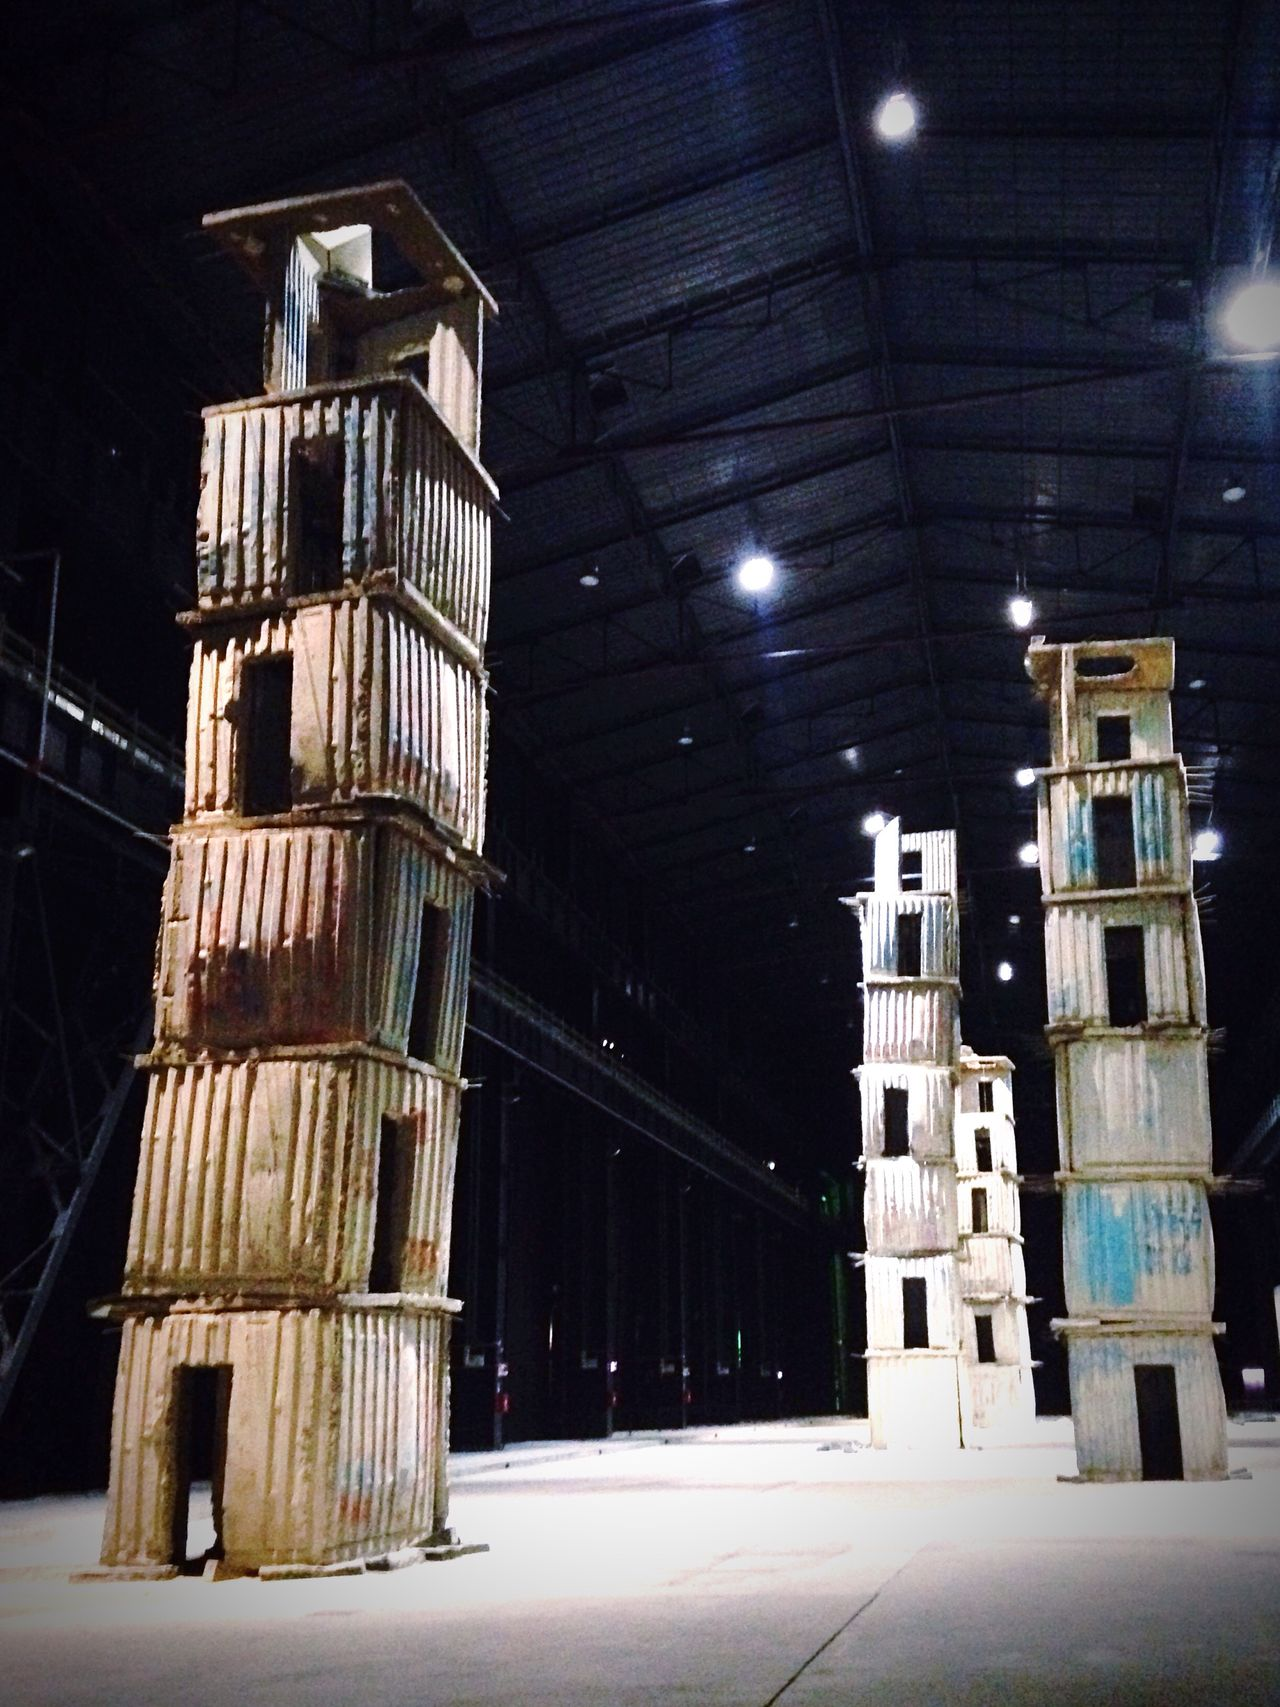 Kiefer Hangarbicocca Buildings Art